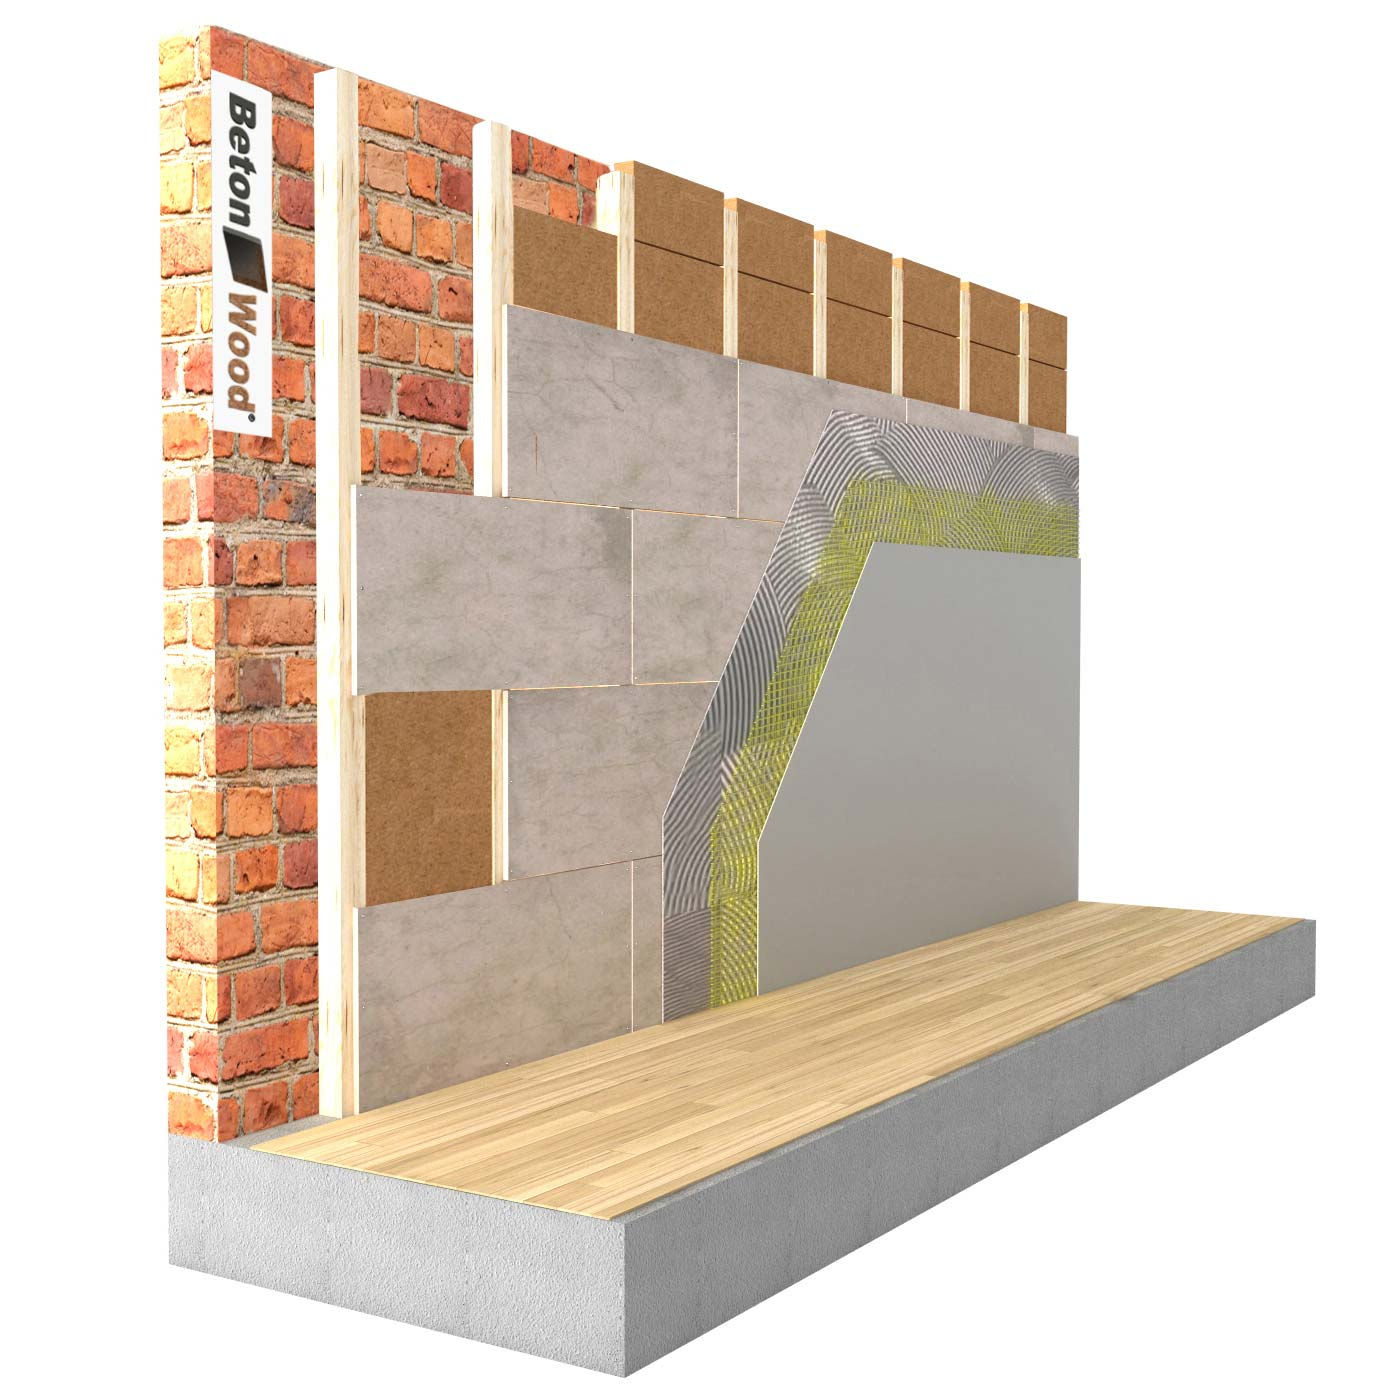 Internal insulation system with fiber wood FiberTherm Internal and cement bonded particle board on masonry